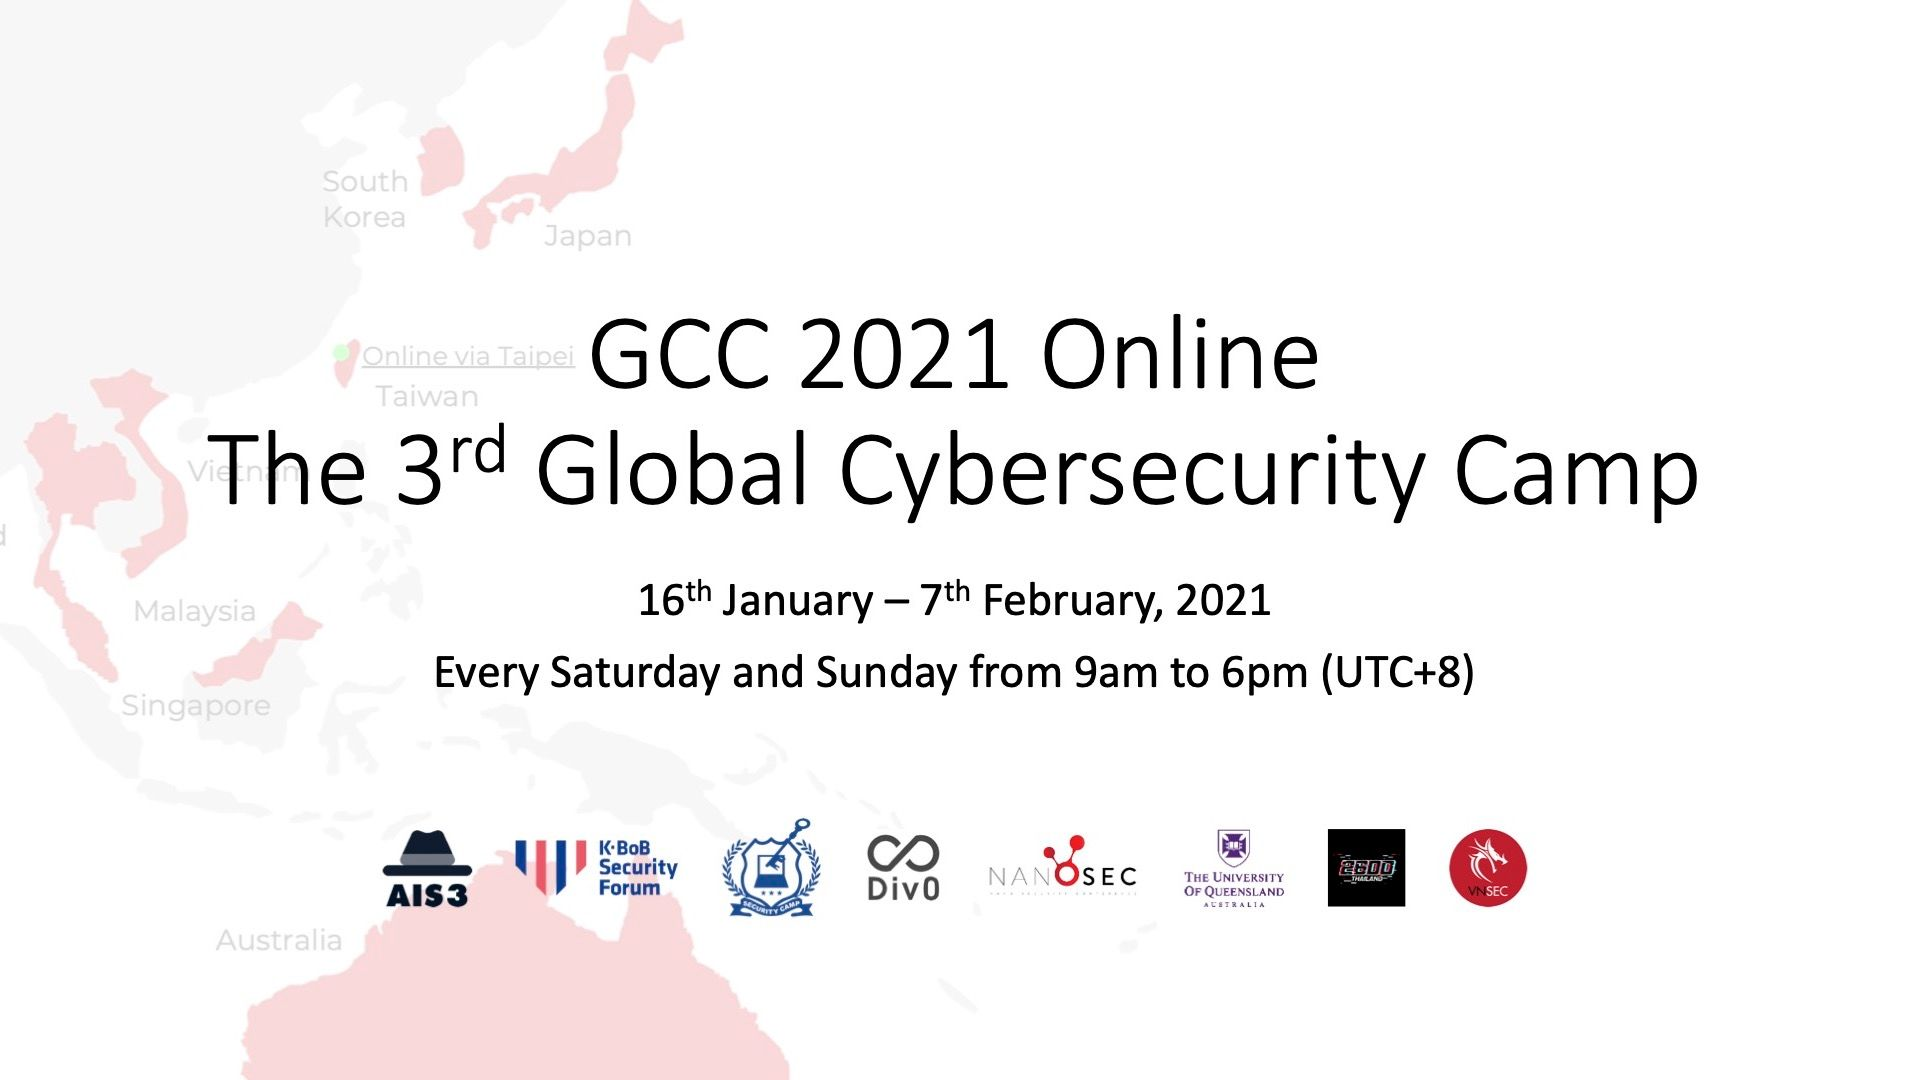 Global Cybersecurity Camp - GCC 2021 Online を開催しました